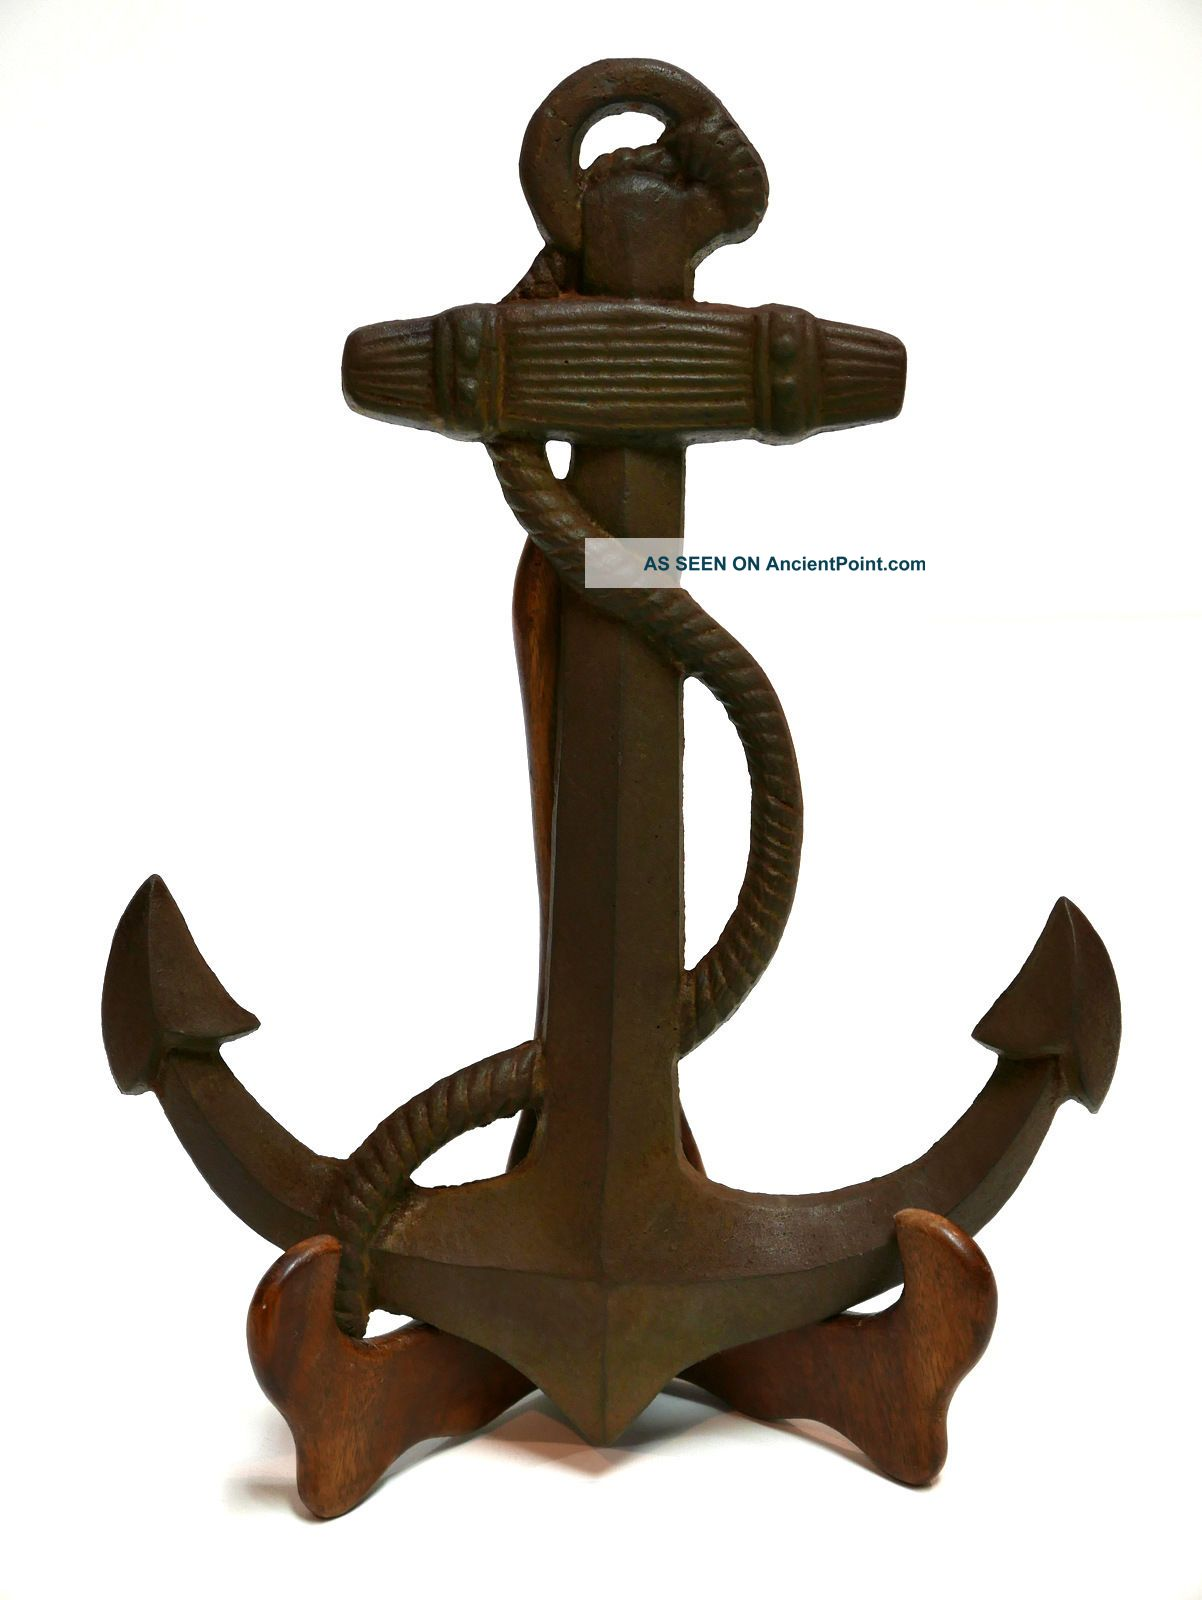 Rustic Ship Iron Anchor Decorative Wall Yard Art Nautical Decor Usa 17